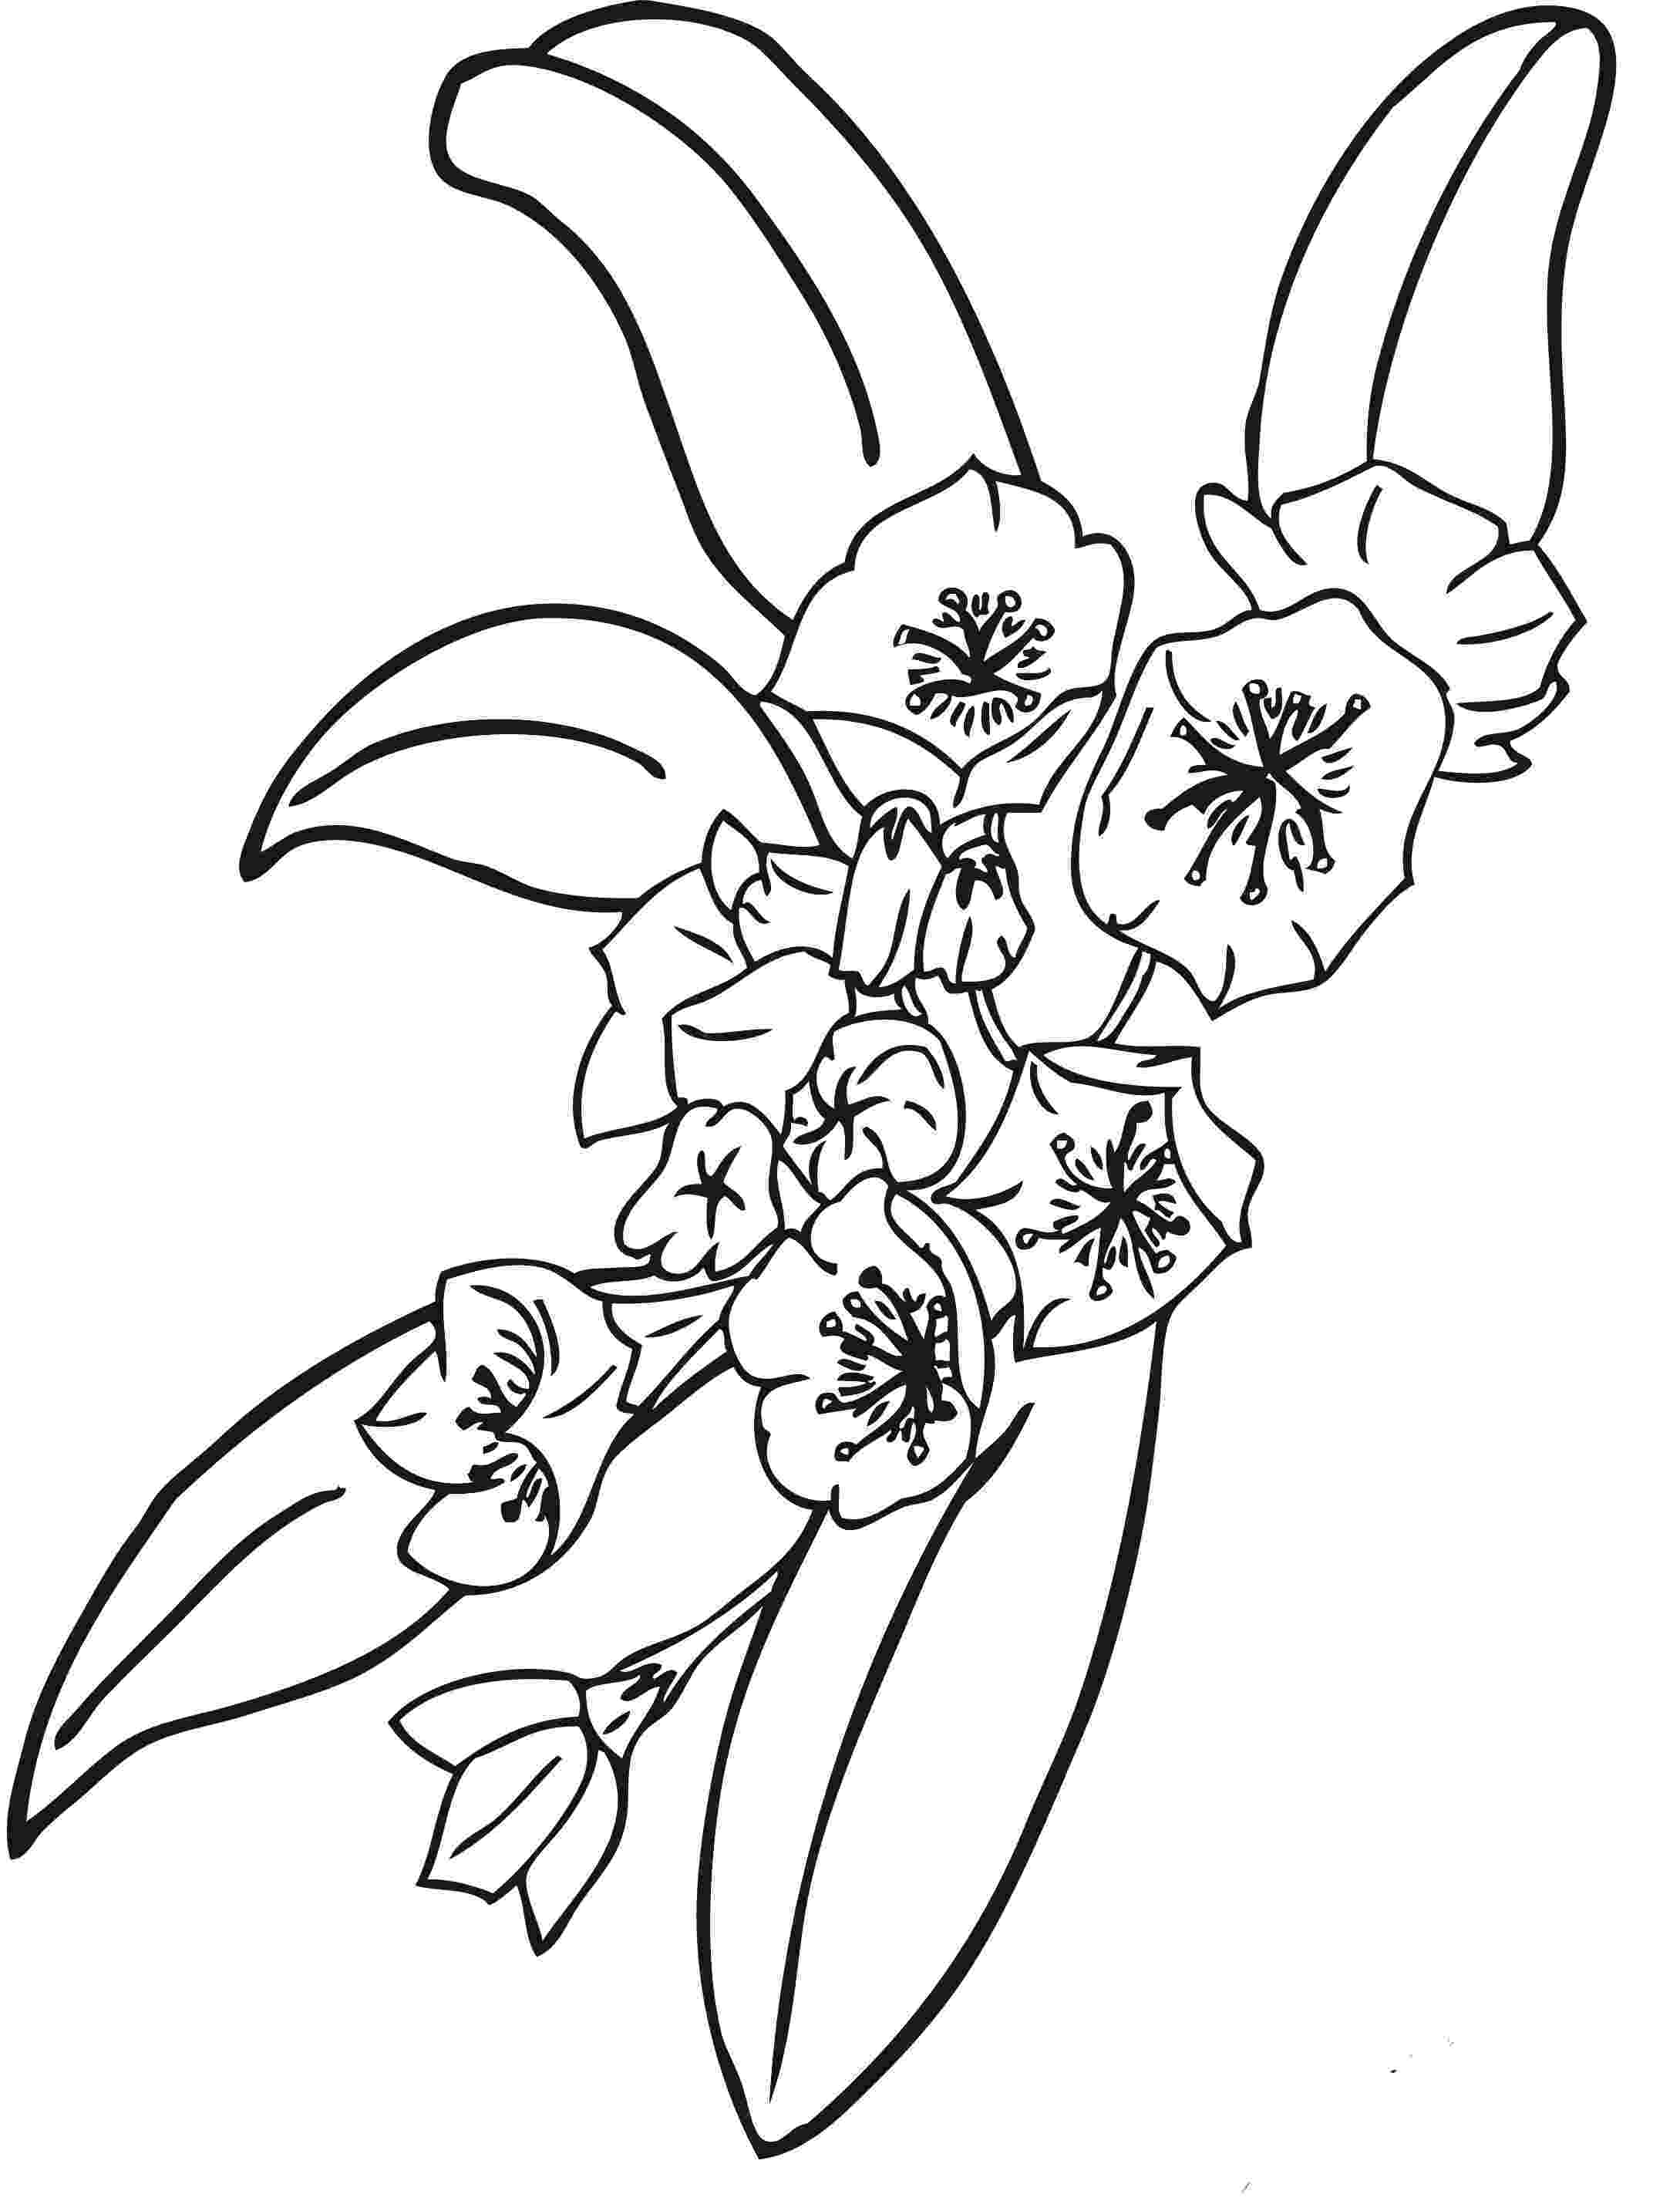 flowers coloring pages for kids colouring pages bouquet flowers printable free for kids pages kids coloring flowers for